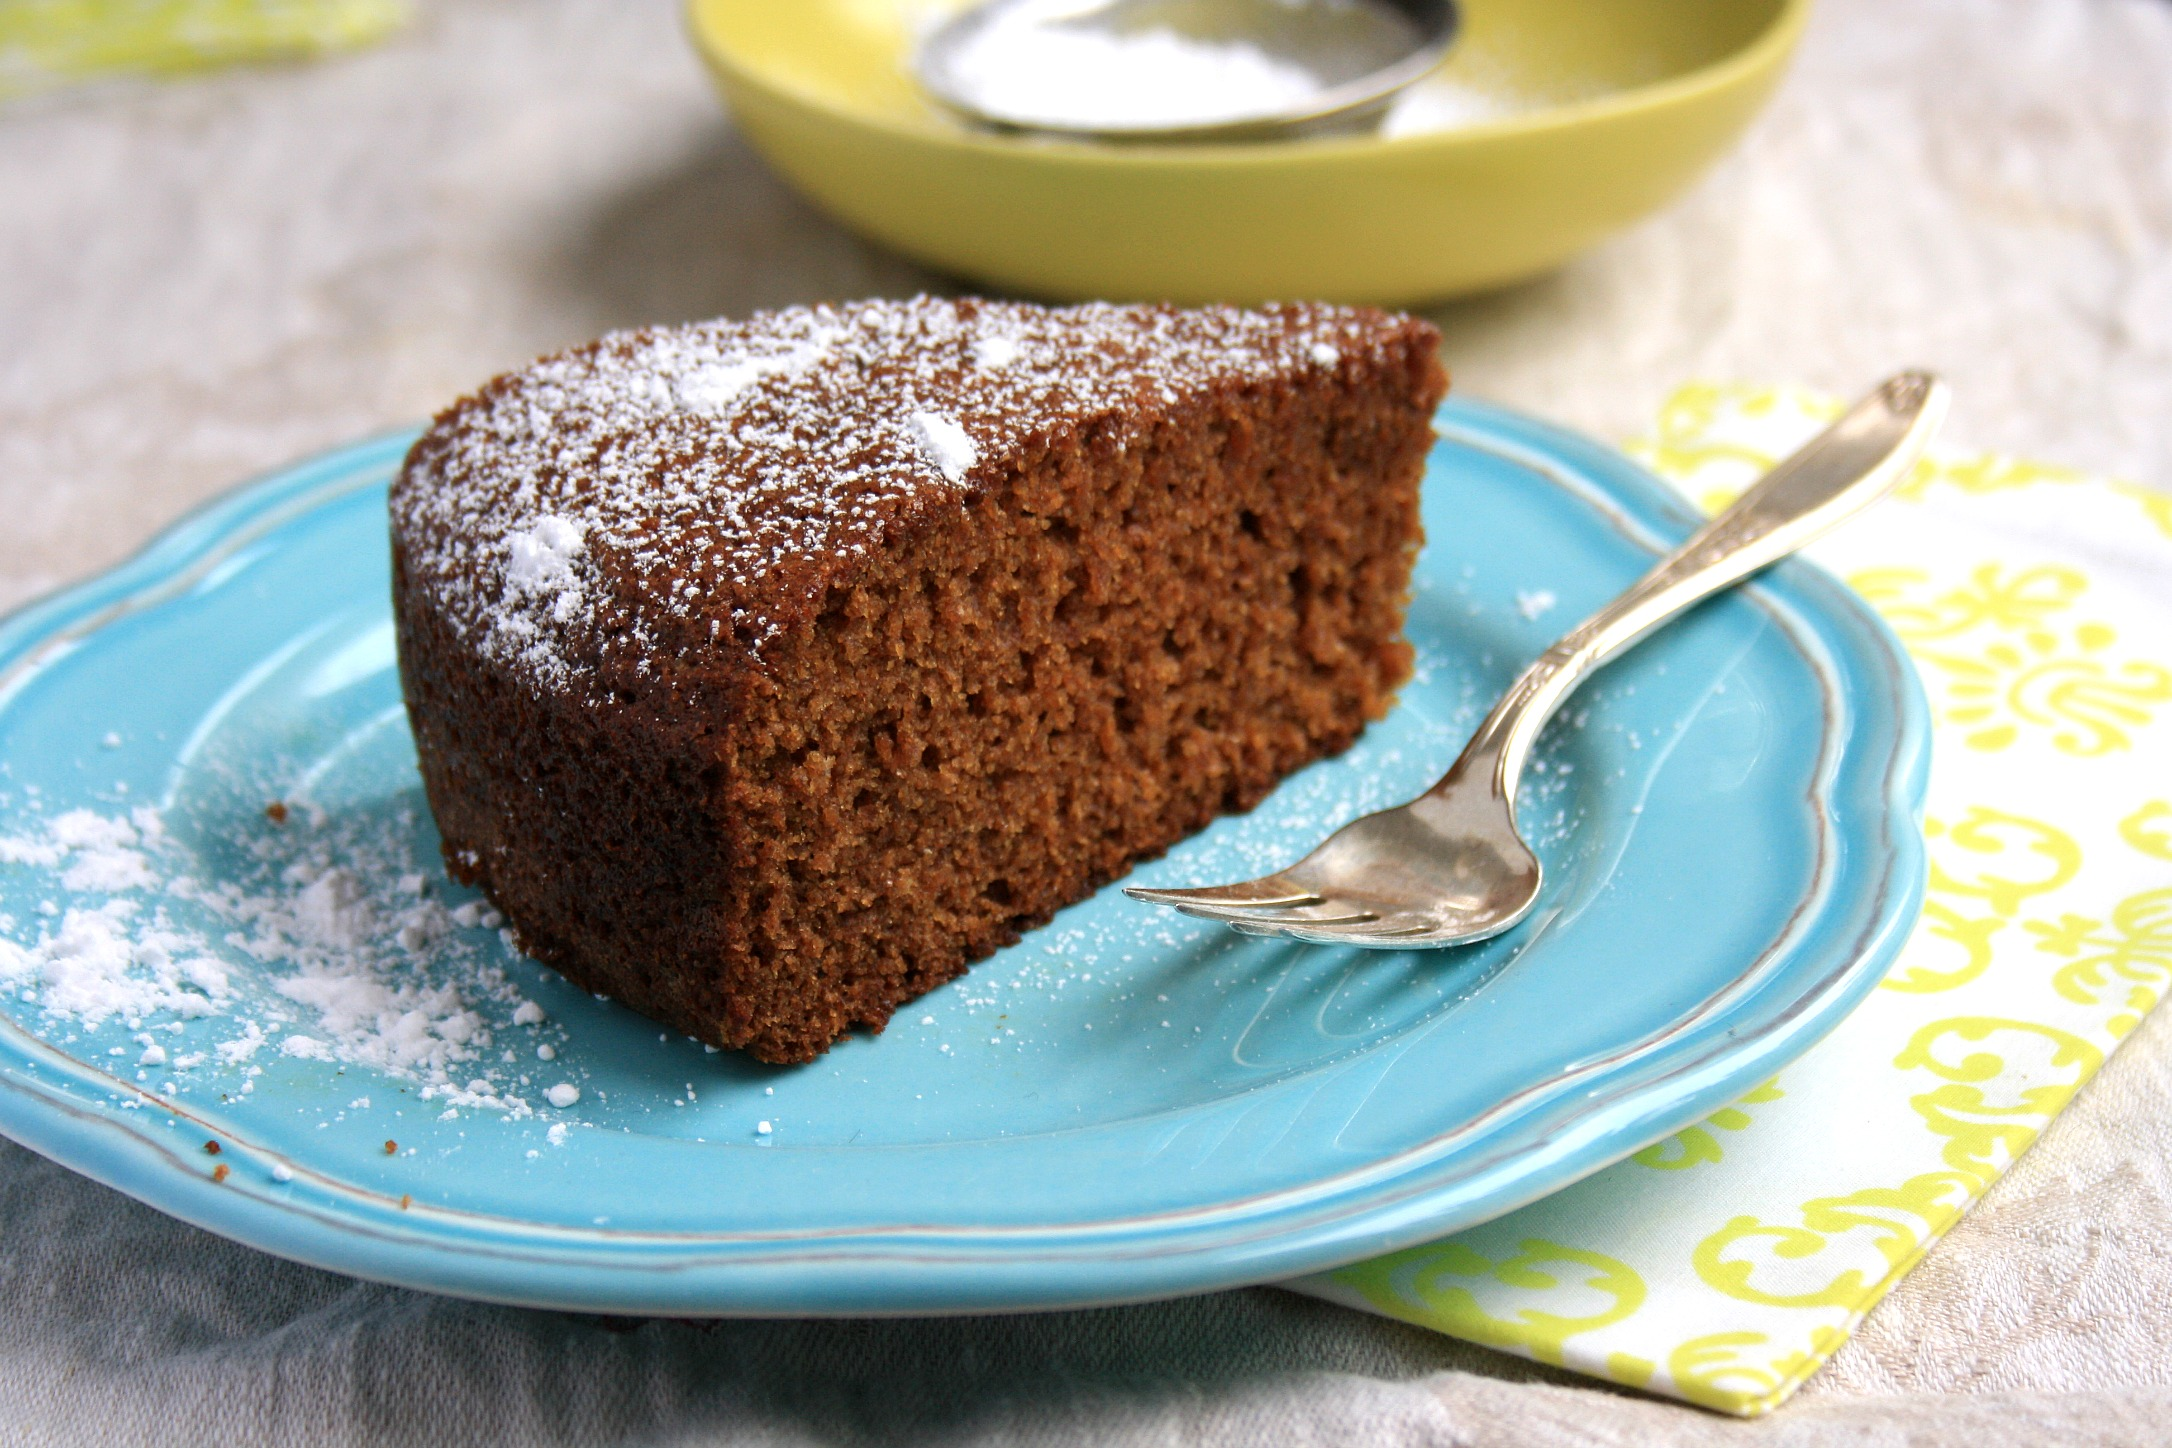 Easy Apple Spice Cake makes a wholesome snack - Crosby's Molasses